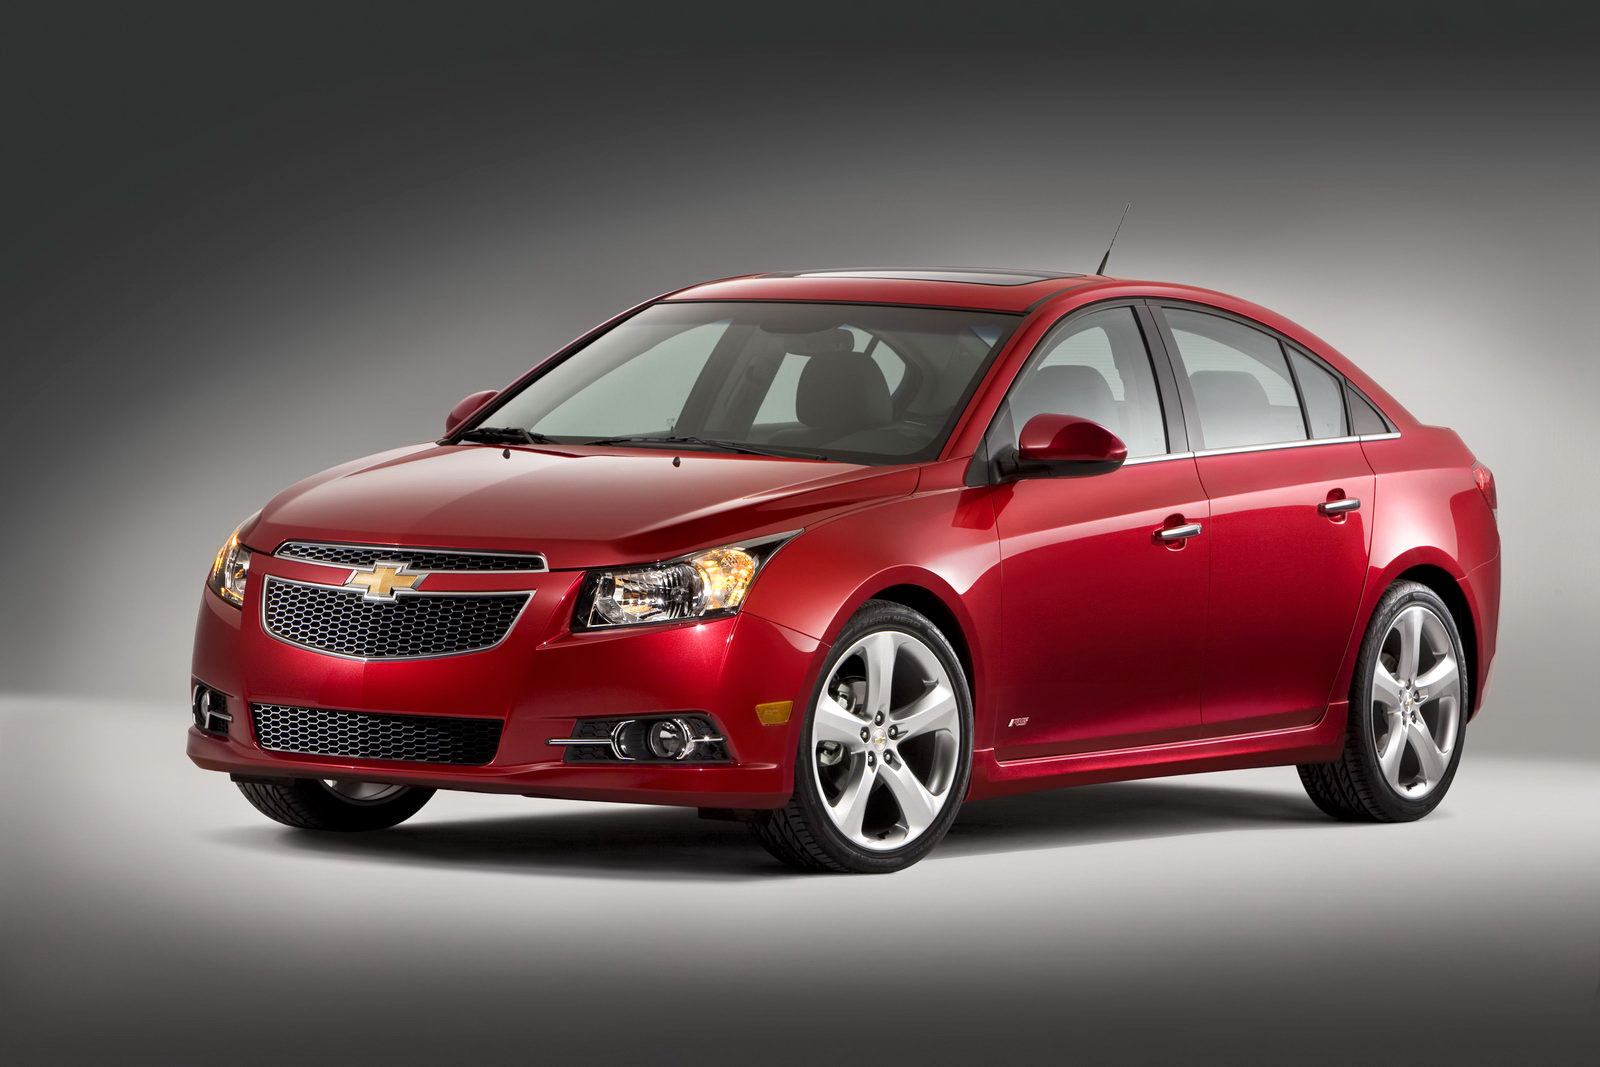 sexy sports cars 2011 chevy cruze. Black Bedroom Furniture Sets. Home Design Ideas